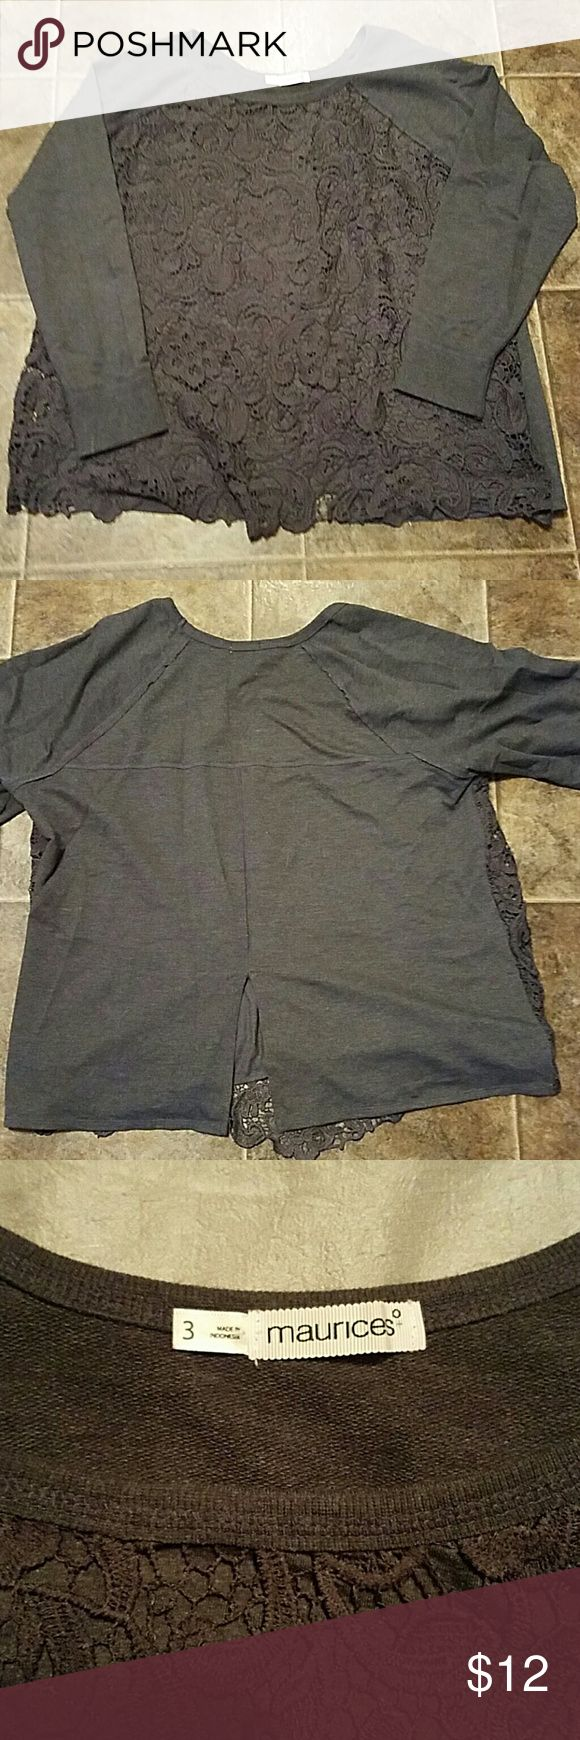 MAURICES (3) Charcoal Gray Lace Front Sweatshirt Very Stylish Charcoal Gray Lace Front Sweatshirt... not see through and slit in back. Maurices  Tops